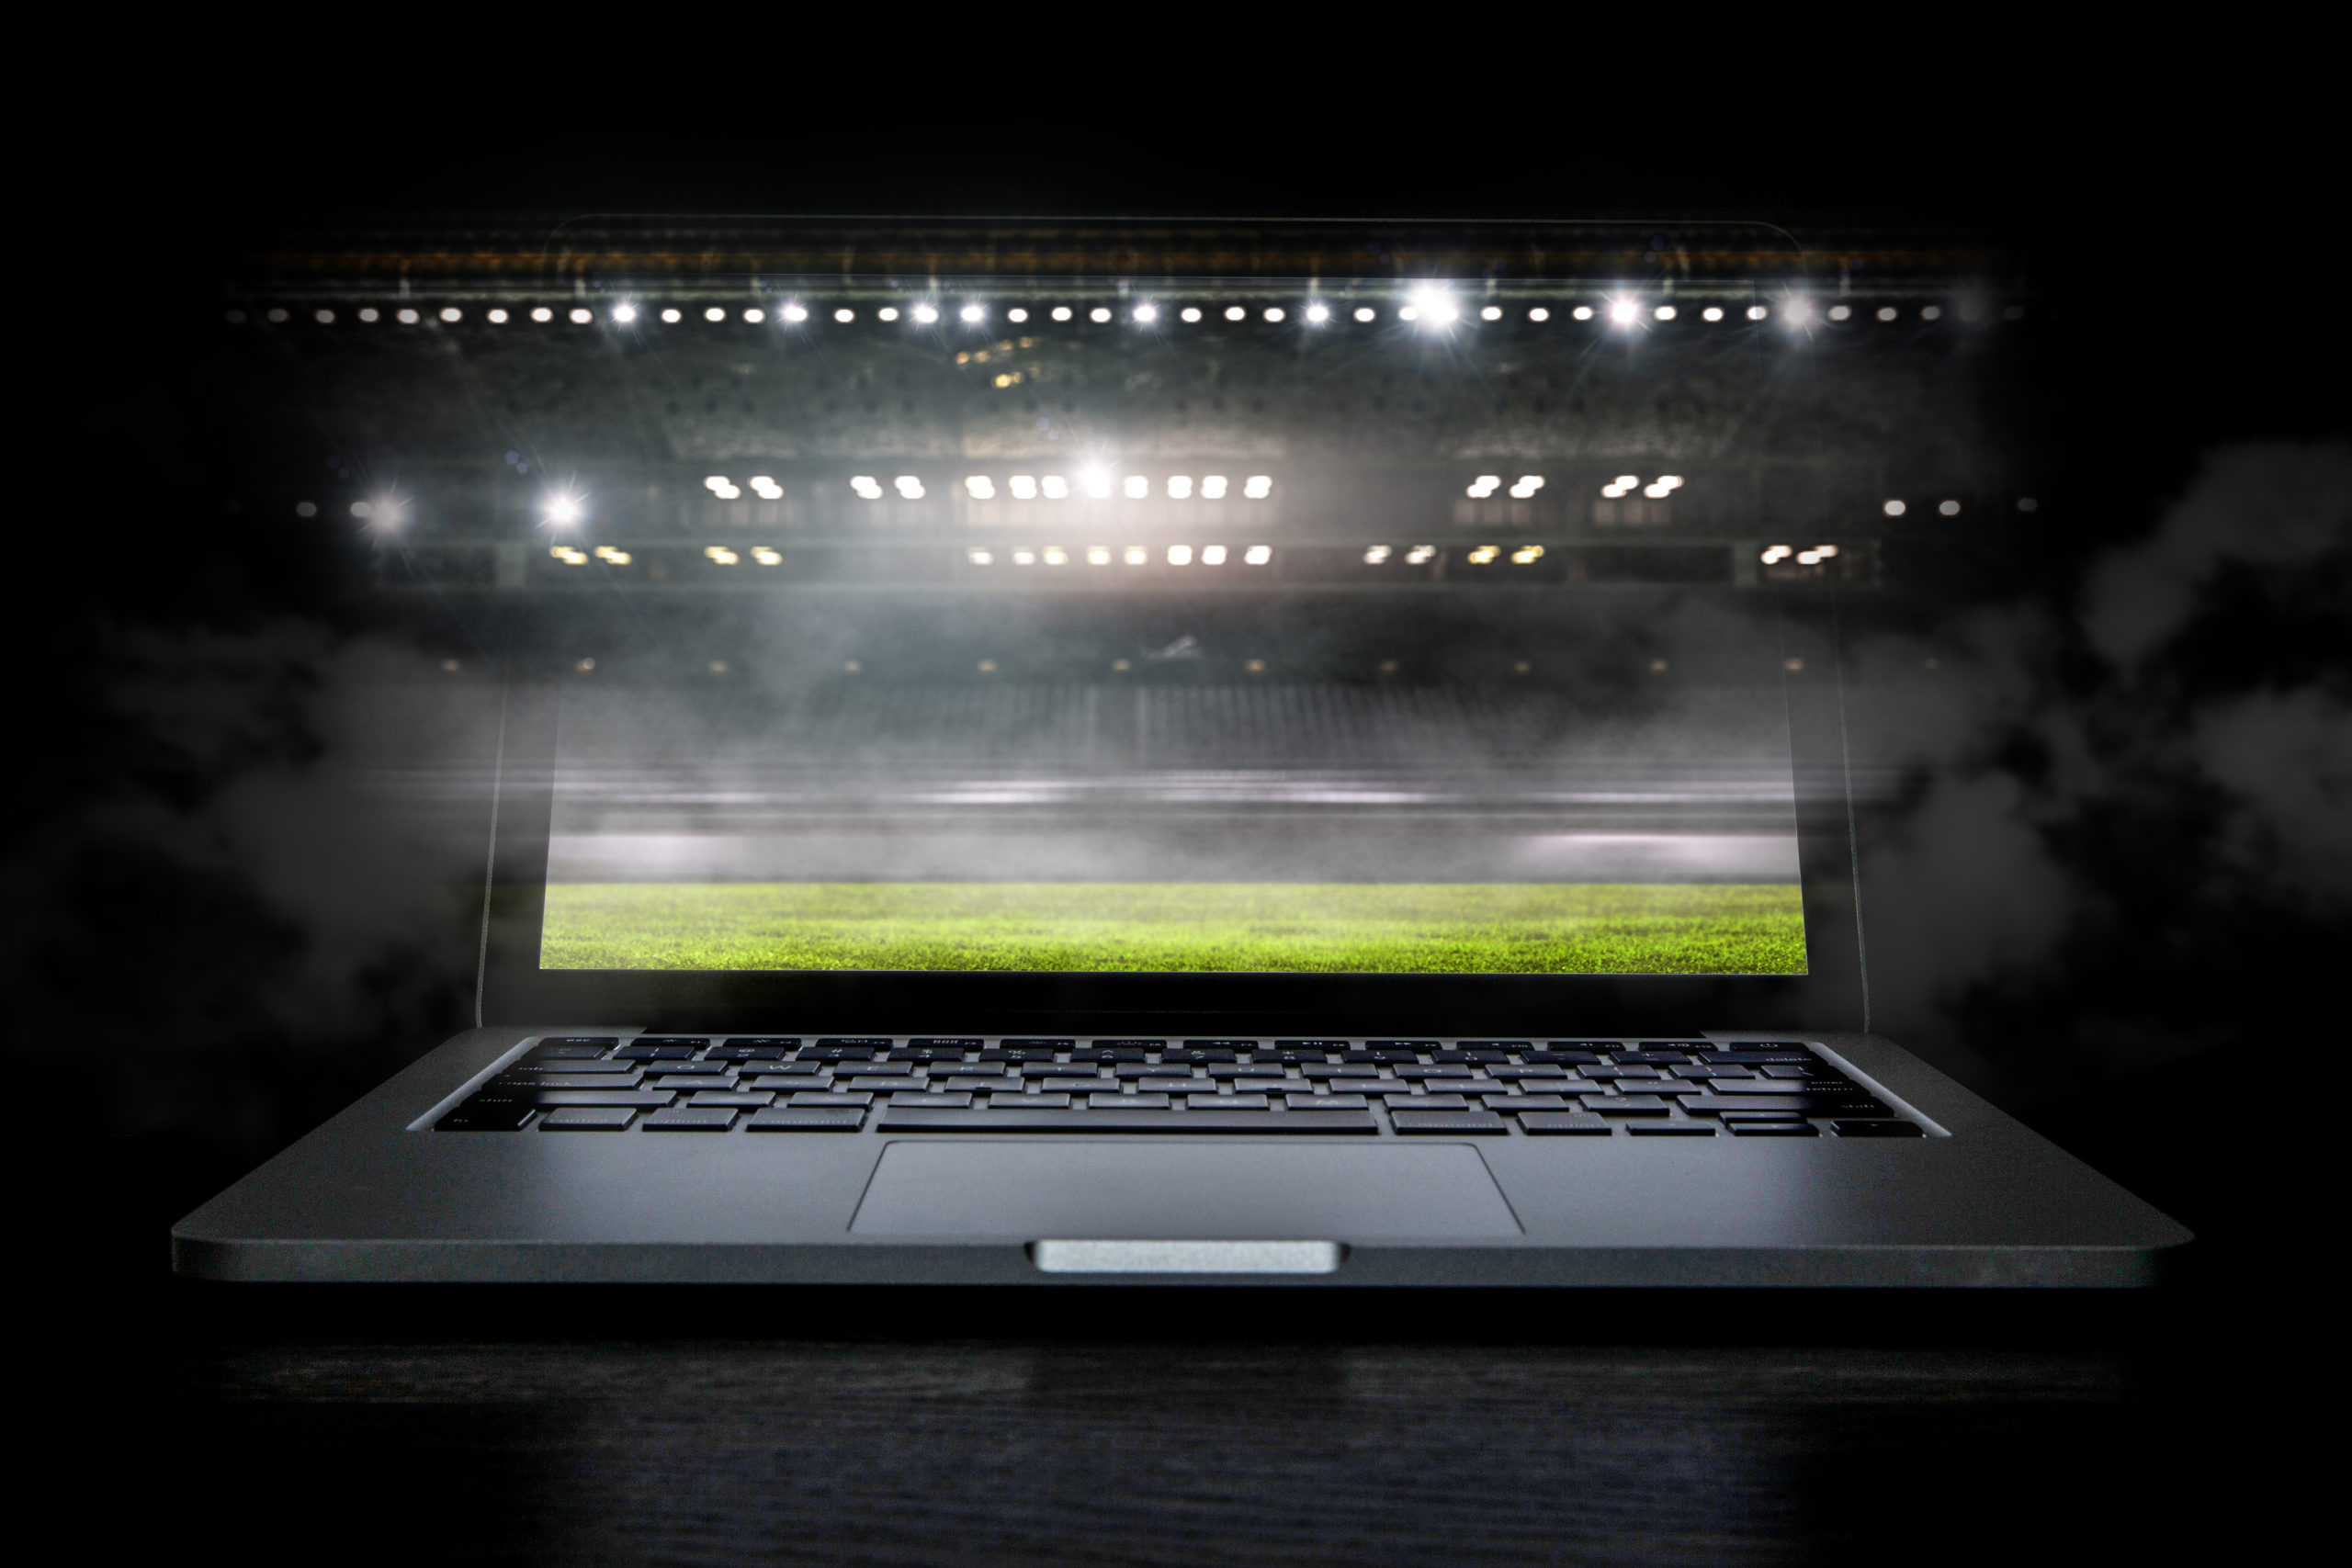 Sport arena with green field and spotlights on laptop screen. Mixed media